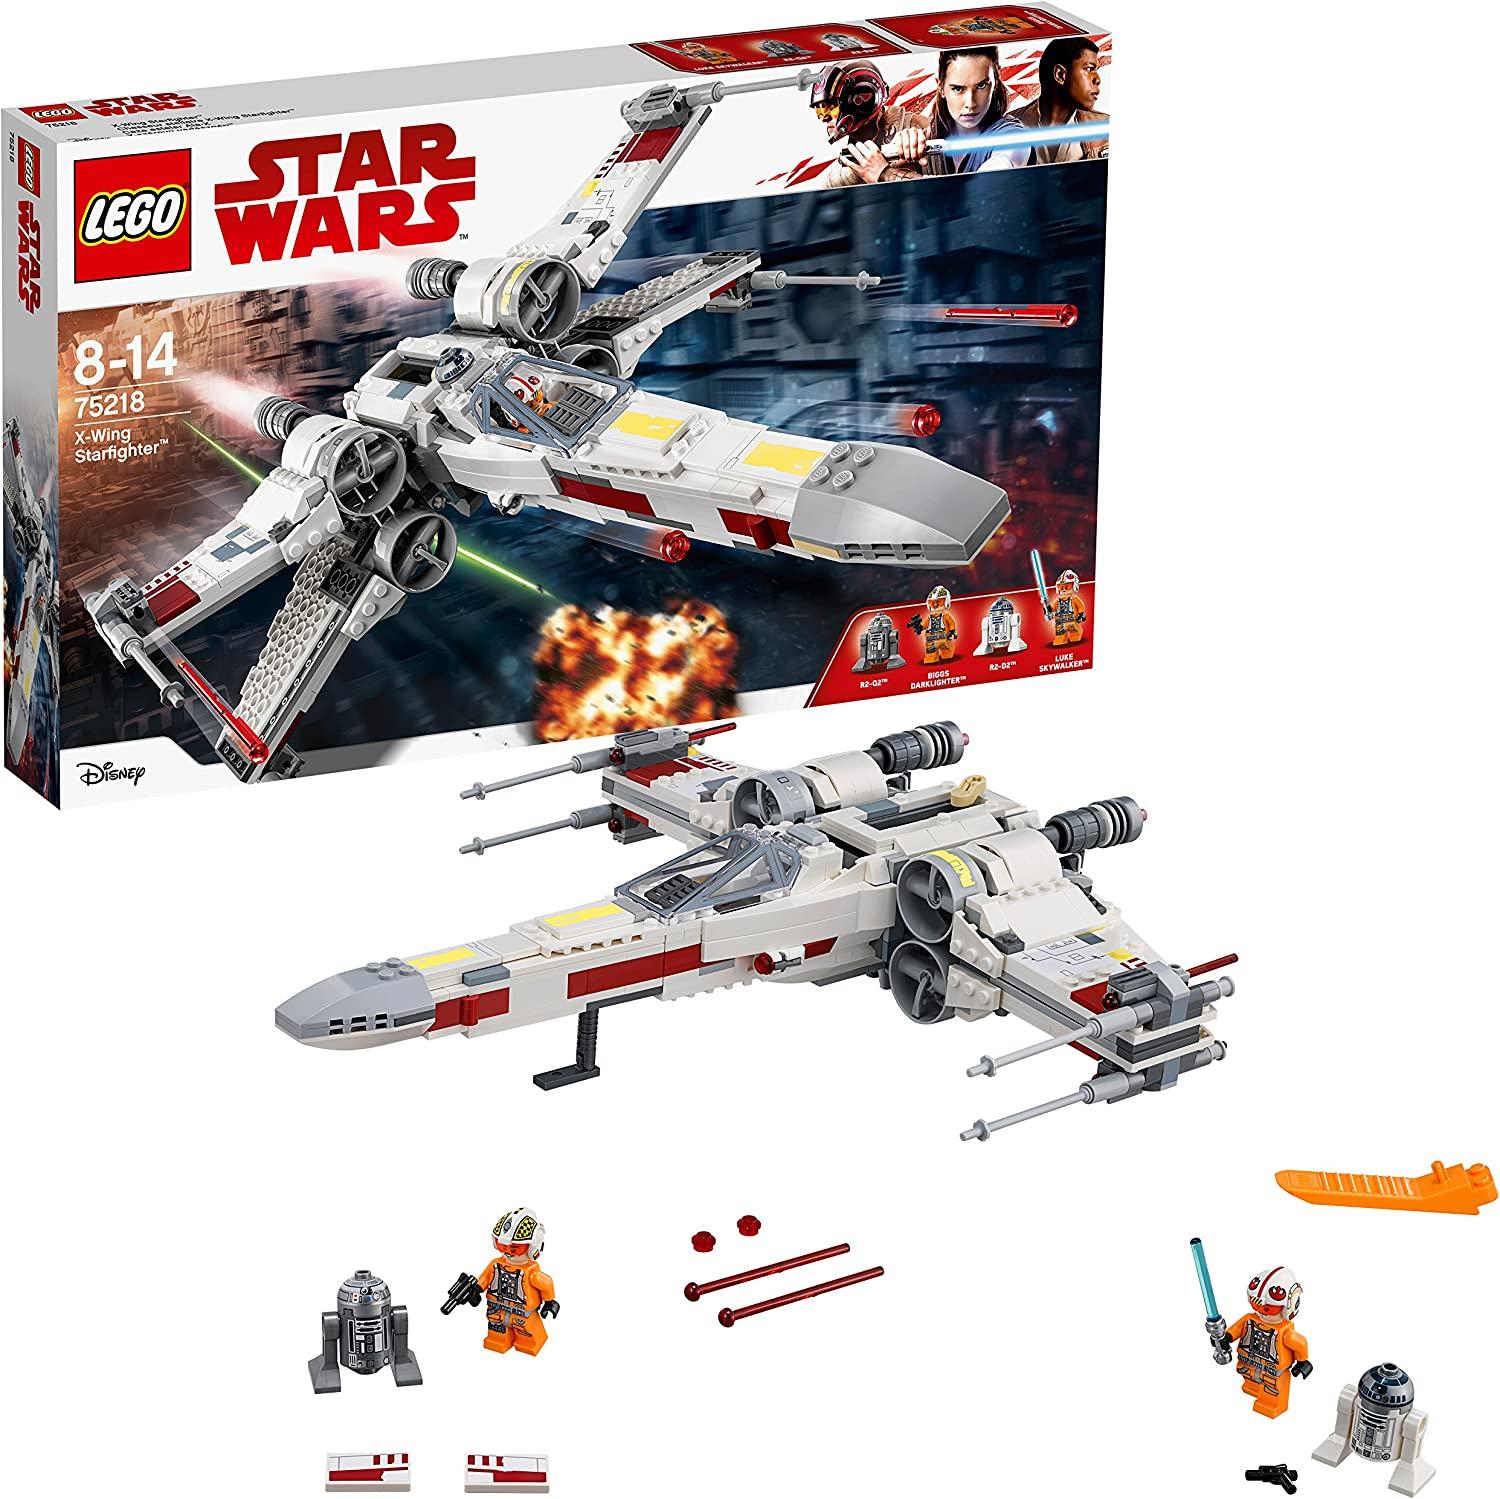 LEGO Star Wars X-Wing Starfighter Building Set